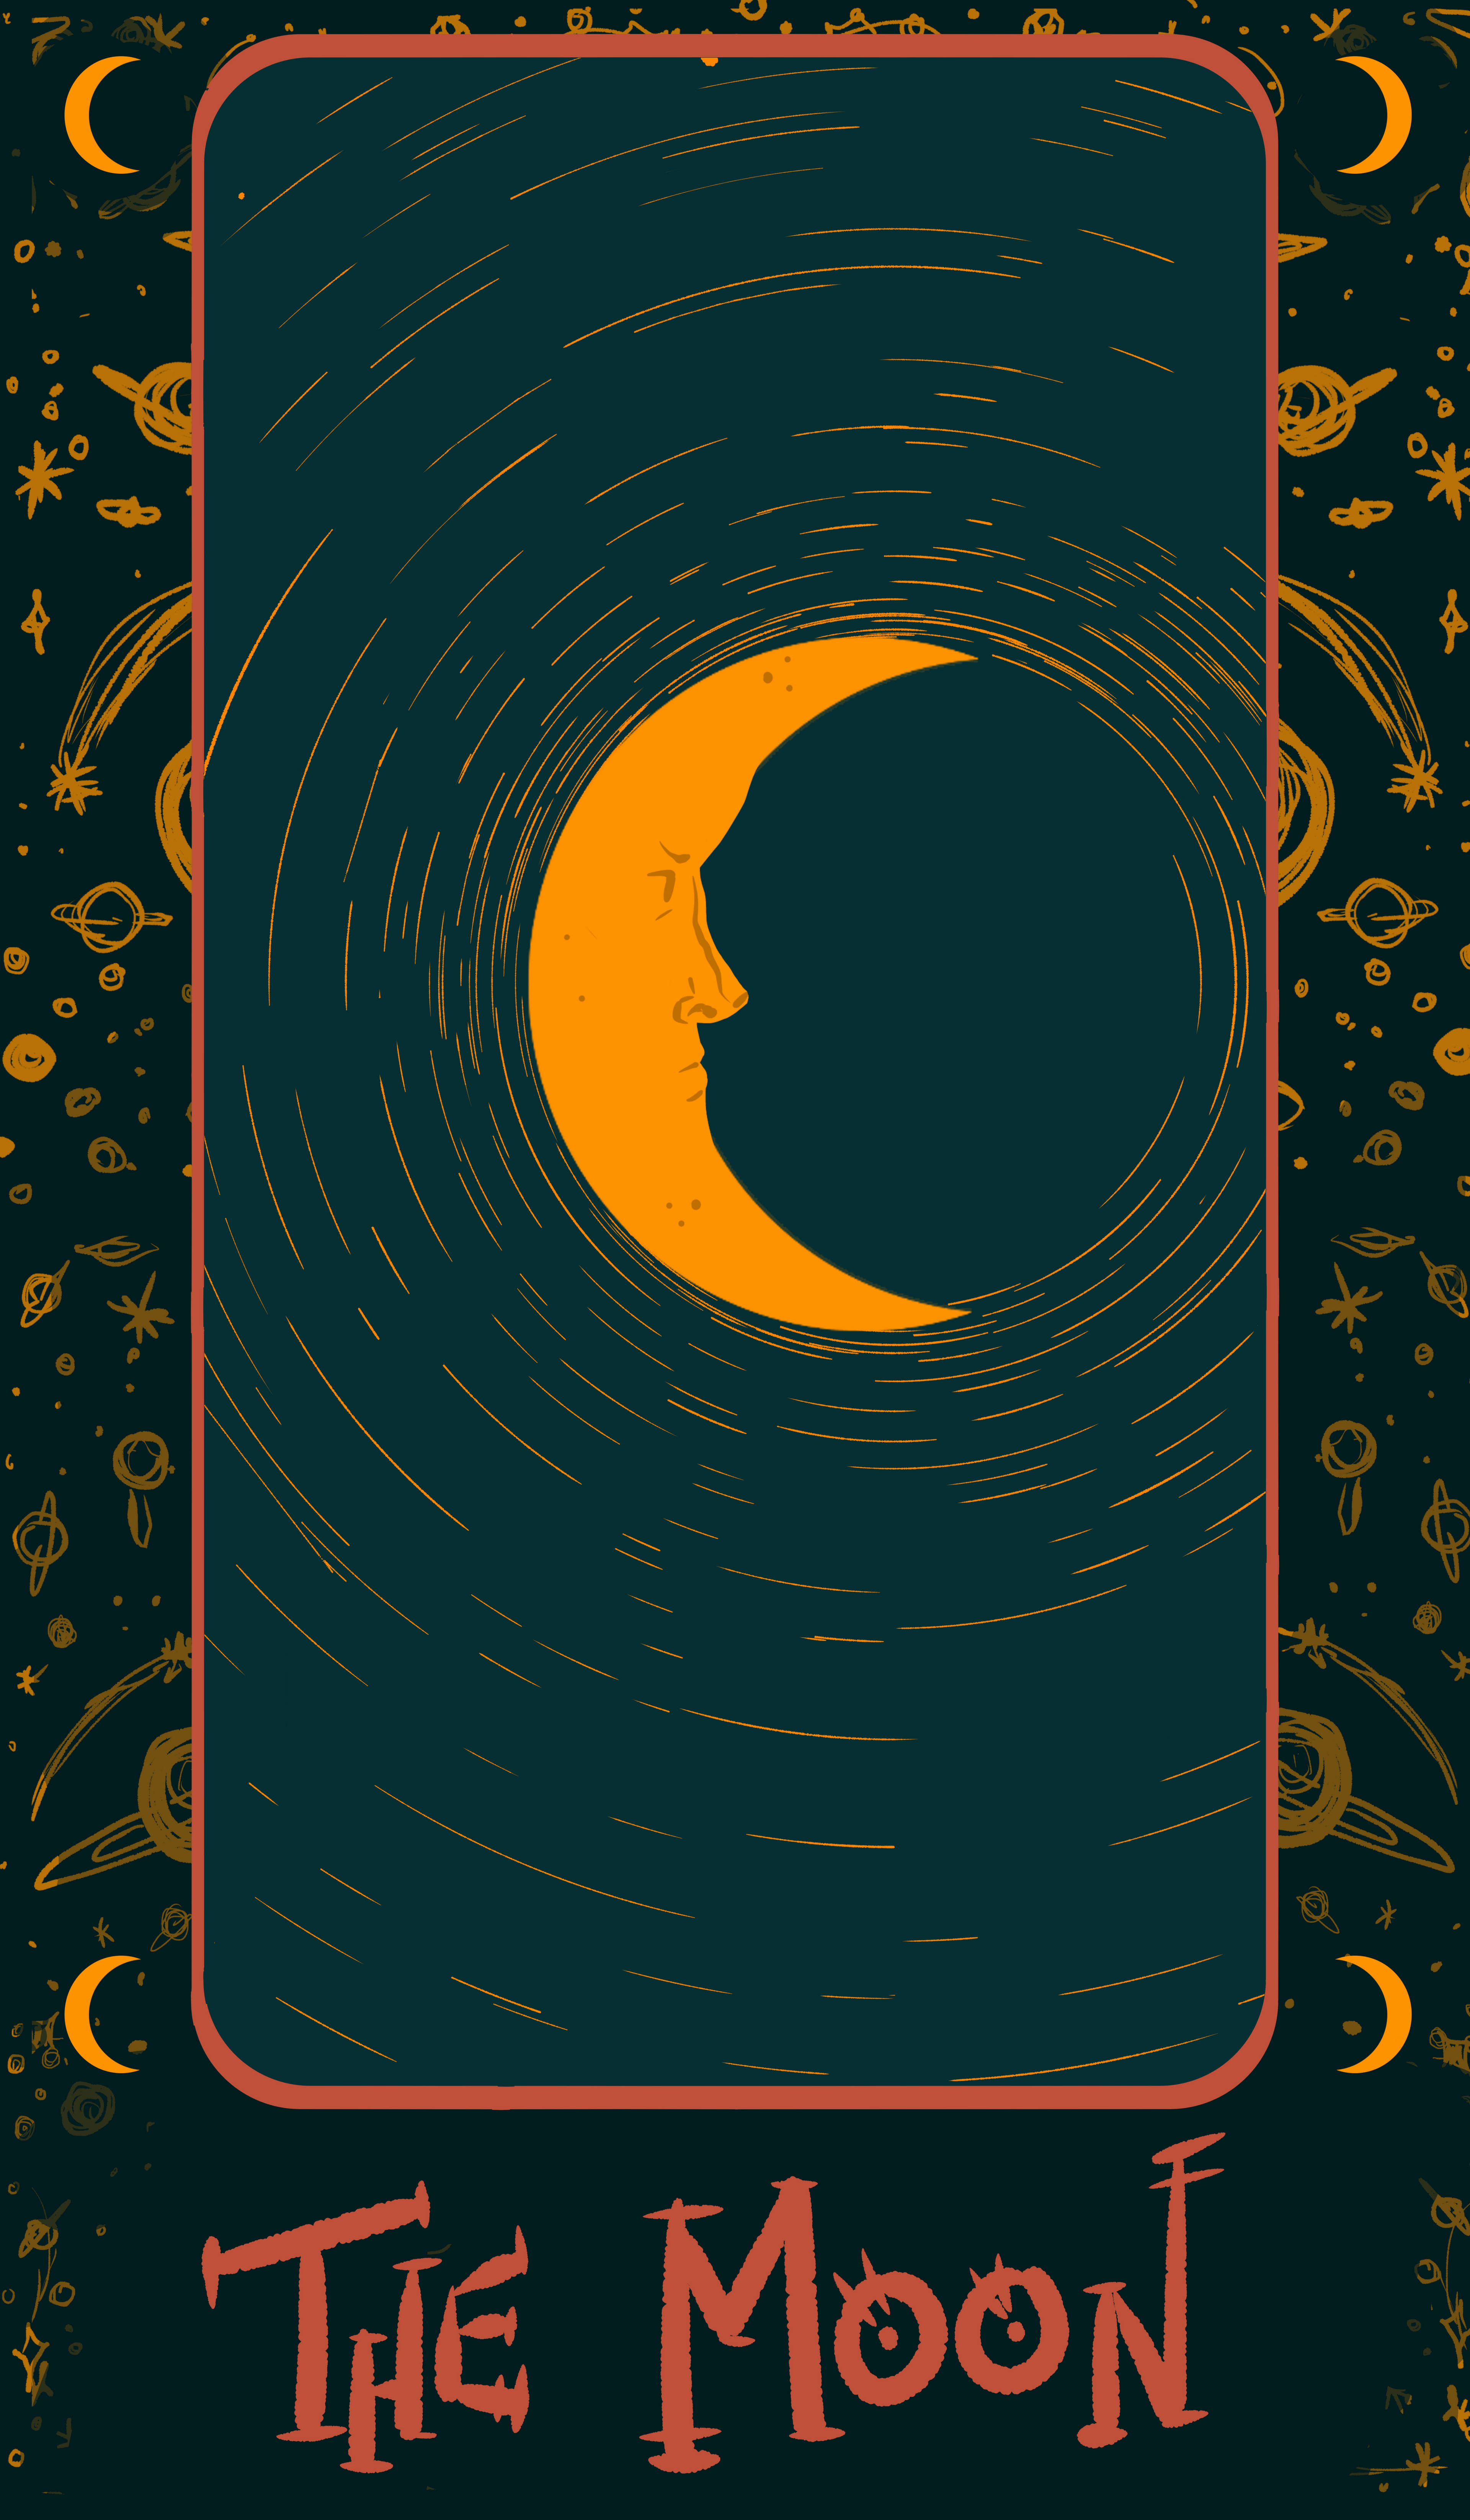 Here's a design I did for a tarot card inspired print. I really like the way this one turned out, honestly.